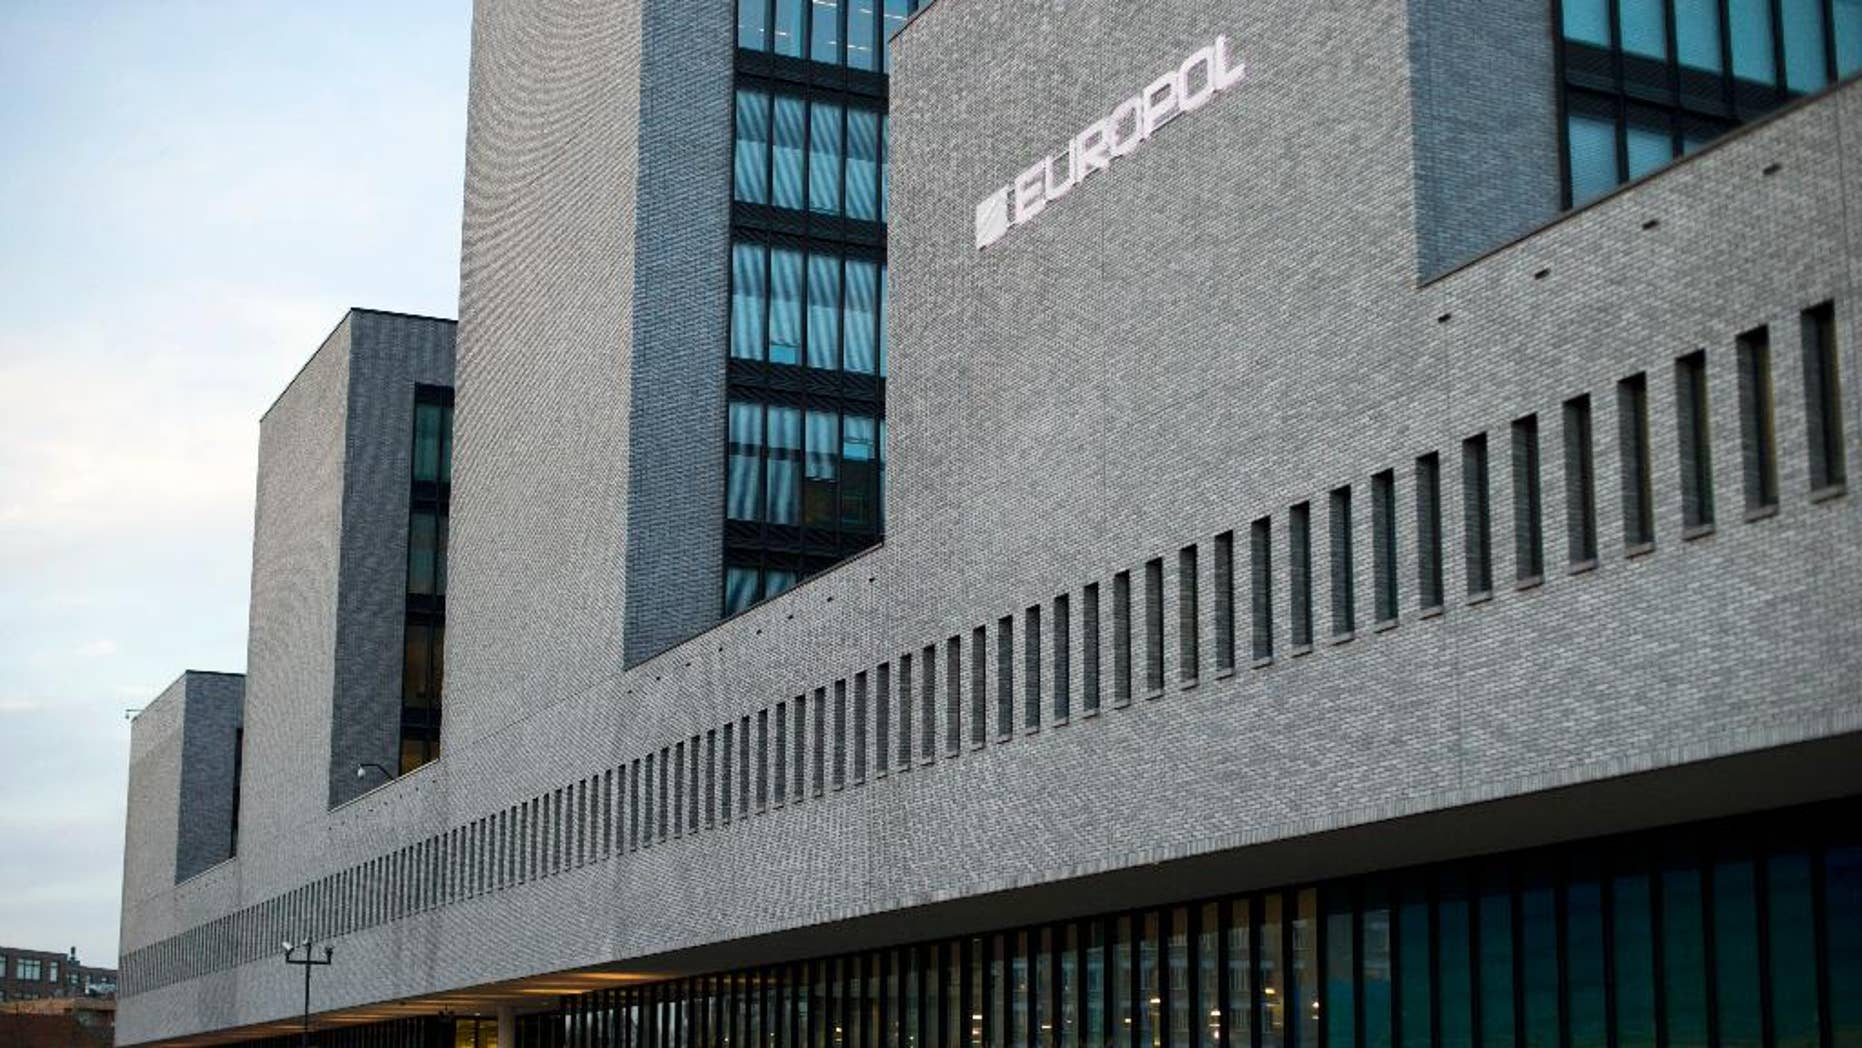 "FILE - In this Jan. 16, 2015 file photo a man walks past the European police agency Europol in The Hague, Netherlands. European Union officials are seeking sweeping changes in bloc policies and practices to face new security risks arising from terrorism, organized crime and cybercrime. EU Commission vice president Frans Timmermans said Tuesday April 28, 2015 there is still too much ""mistrust and reticence to cooperate"" among European countries. (AP Photo/Peter Dejong, File)"